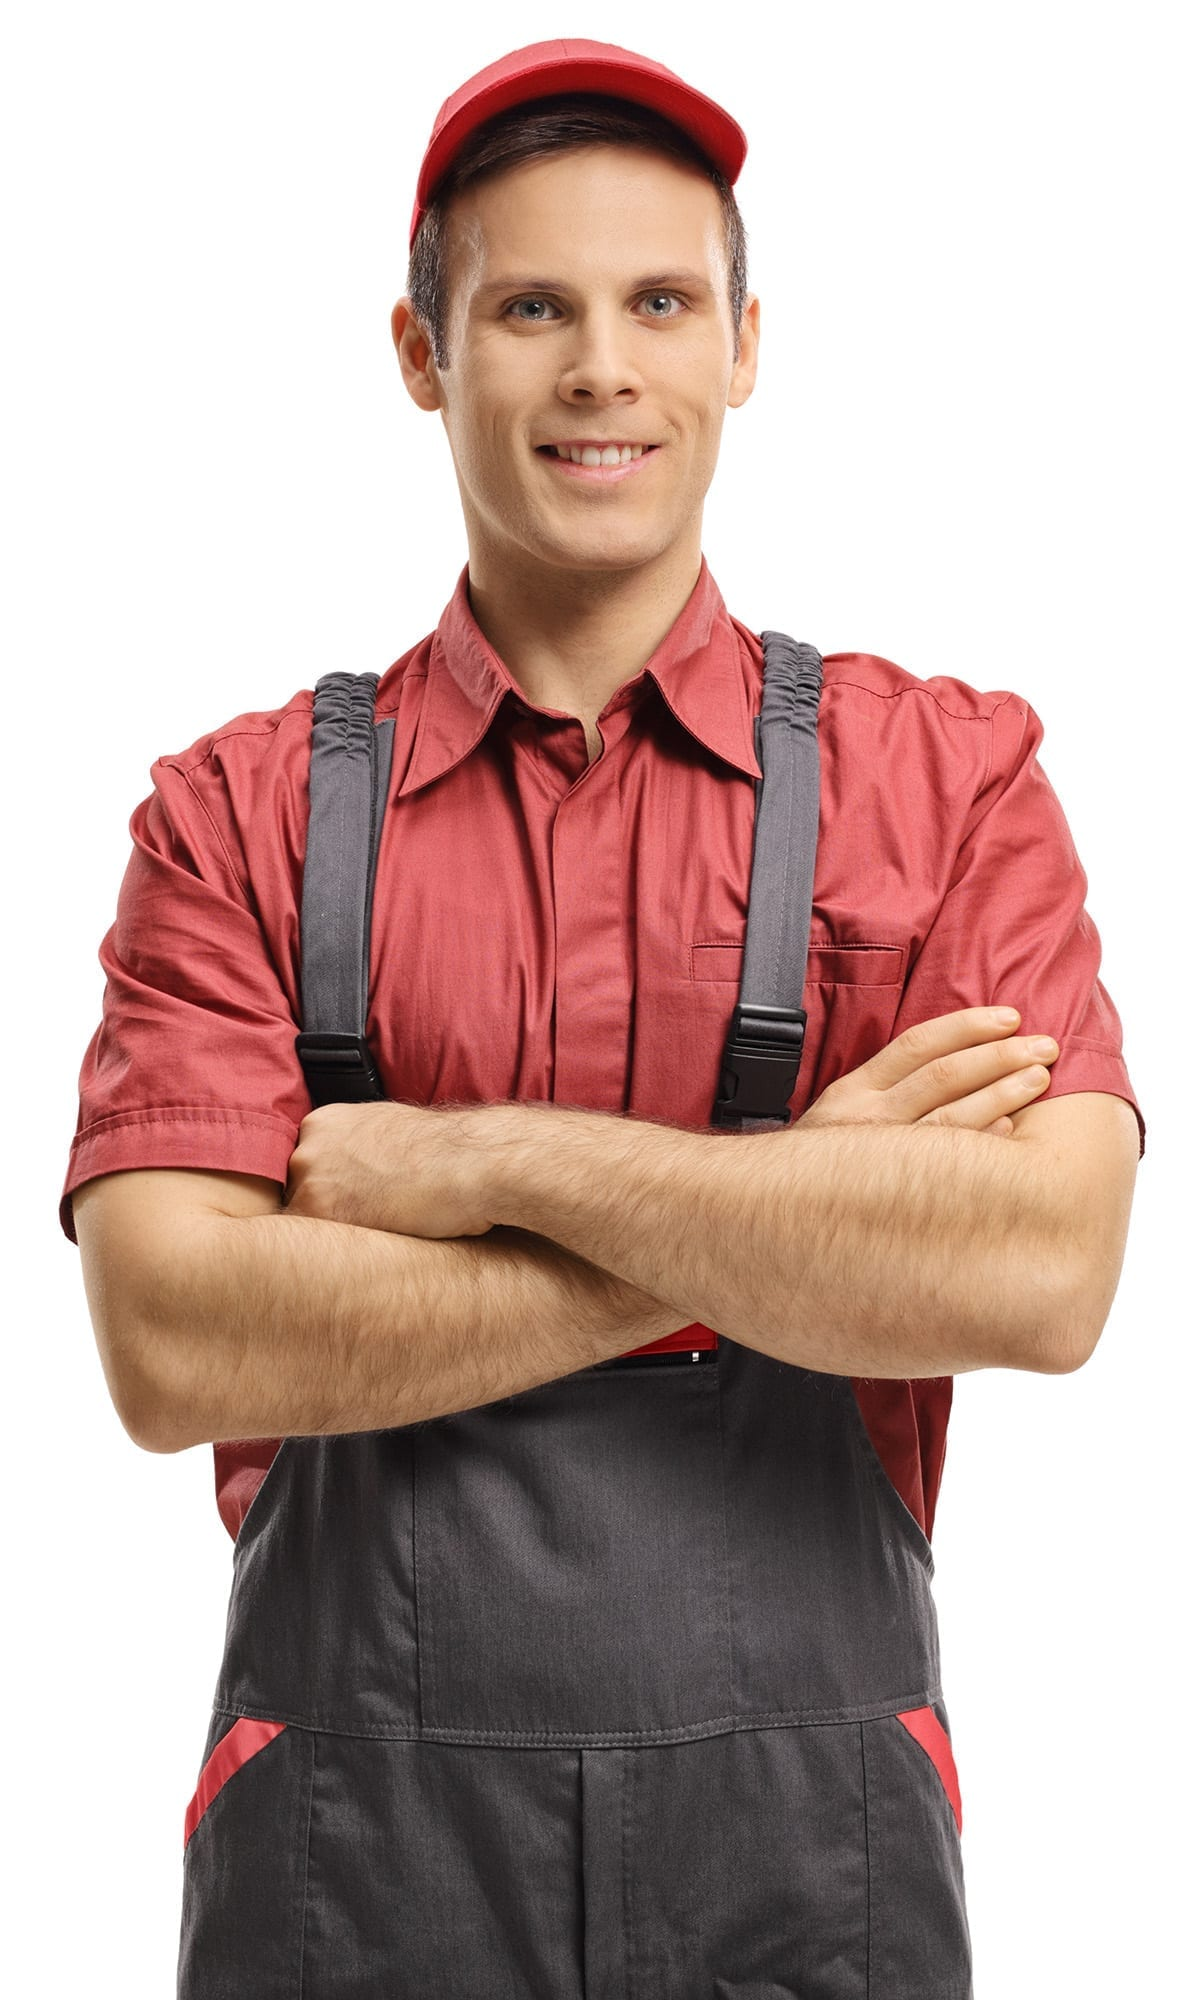 Repairman with his arms crossed